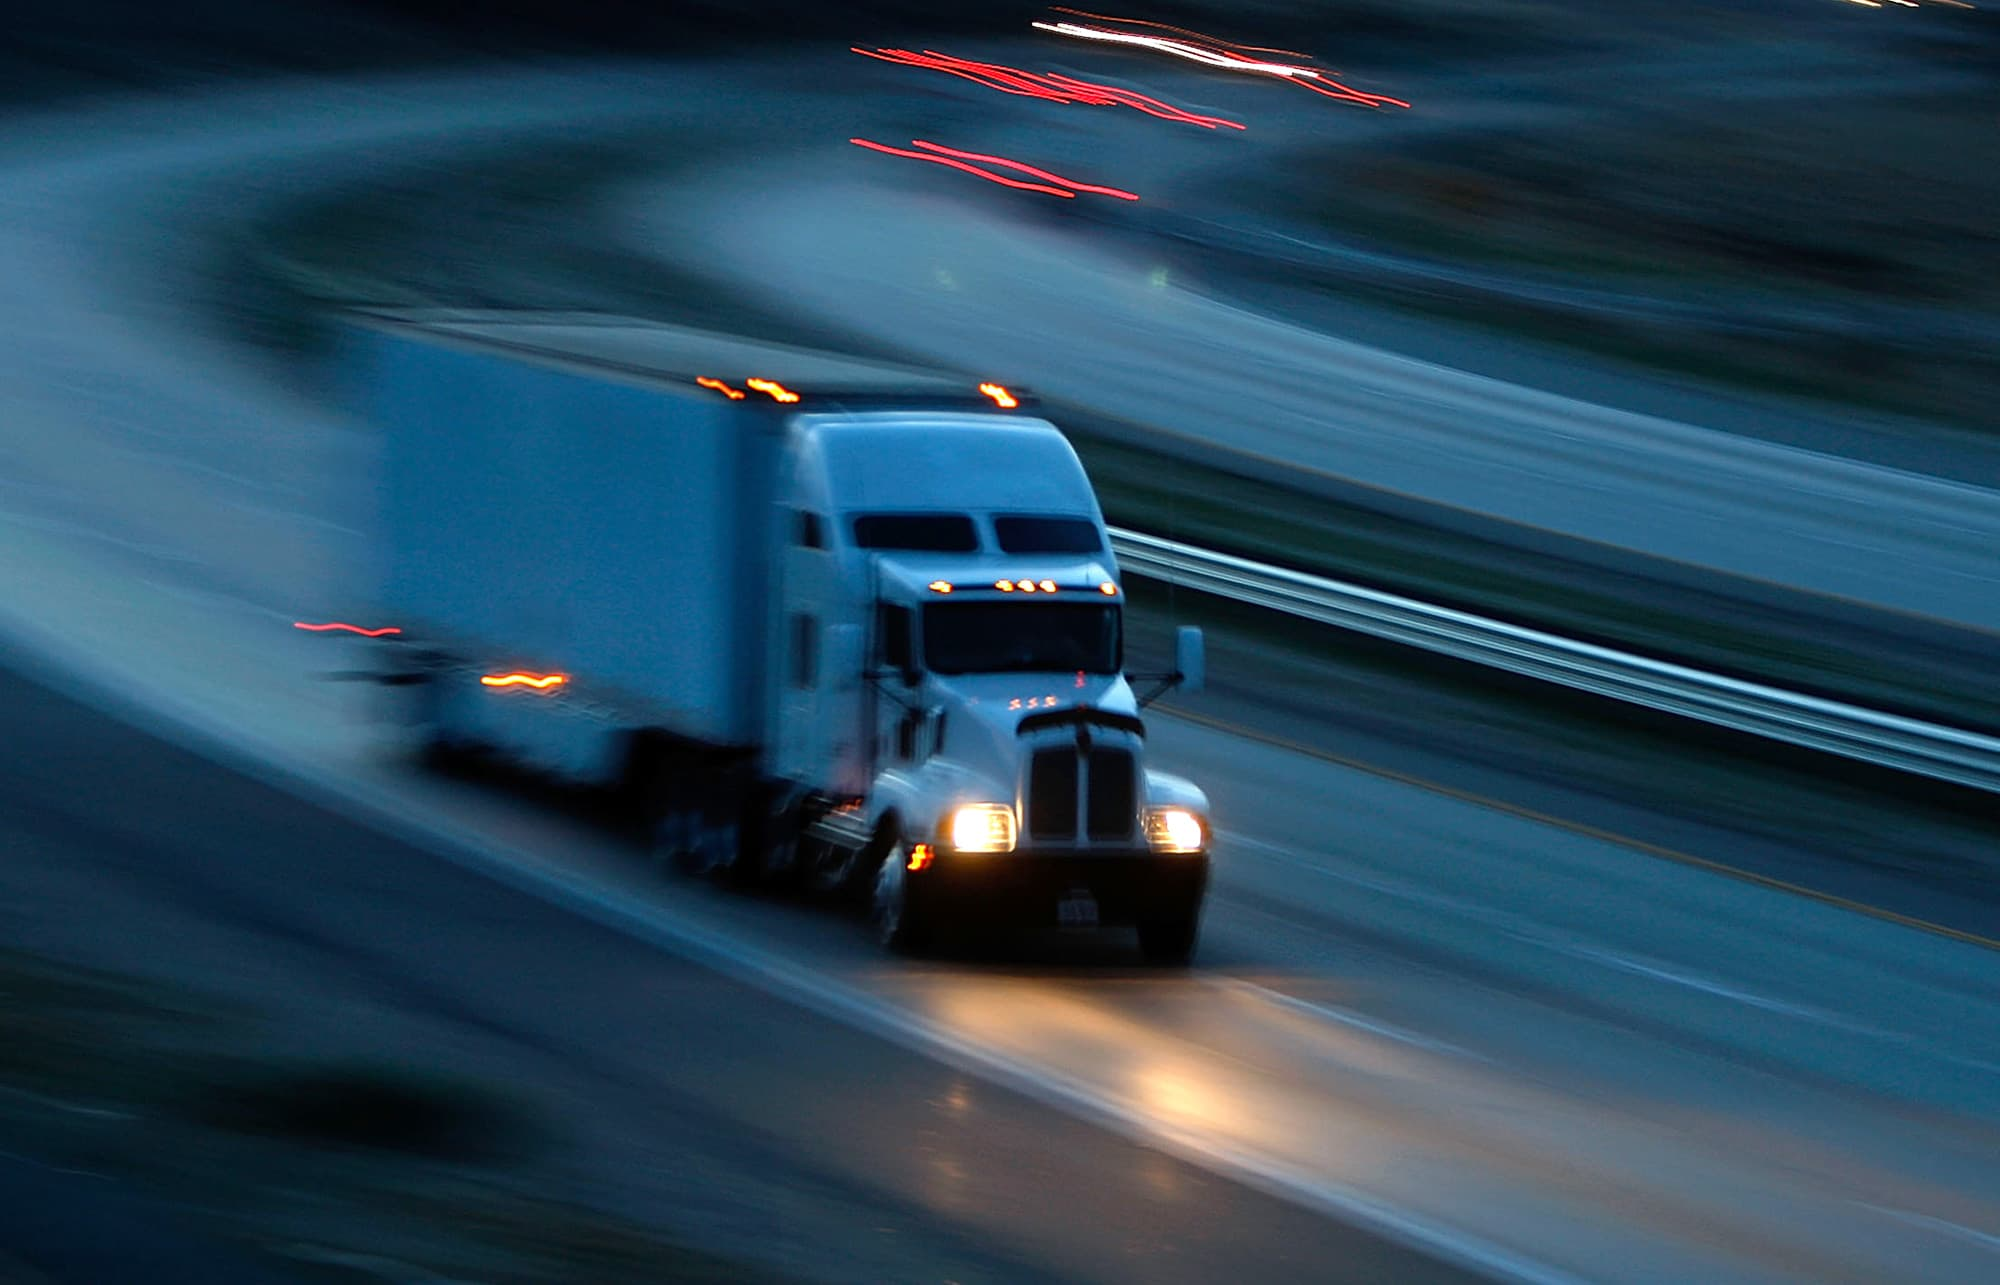 CEO of the largest US trucking company predicts 'difficult' quarter for transport industry